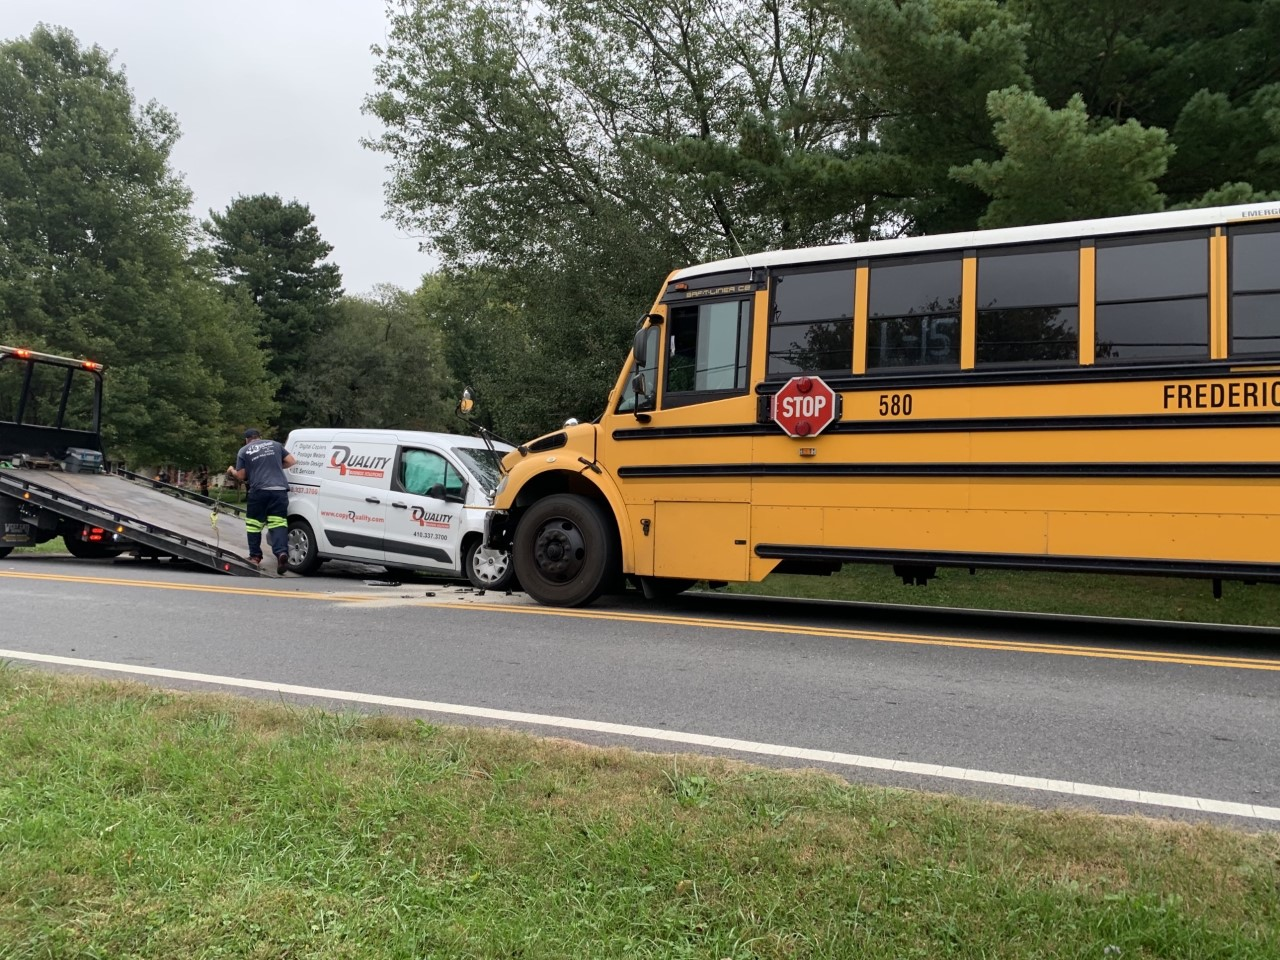 A white van and a school bus were involved in a head-on collision.